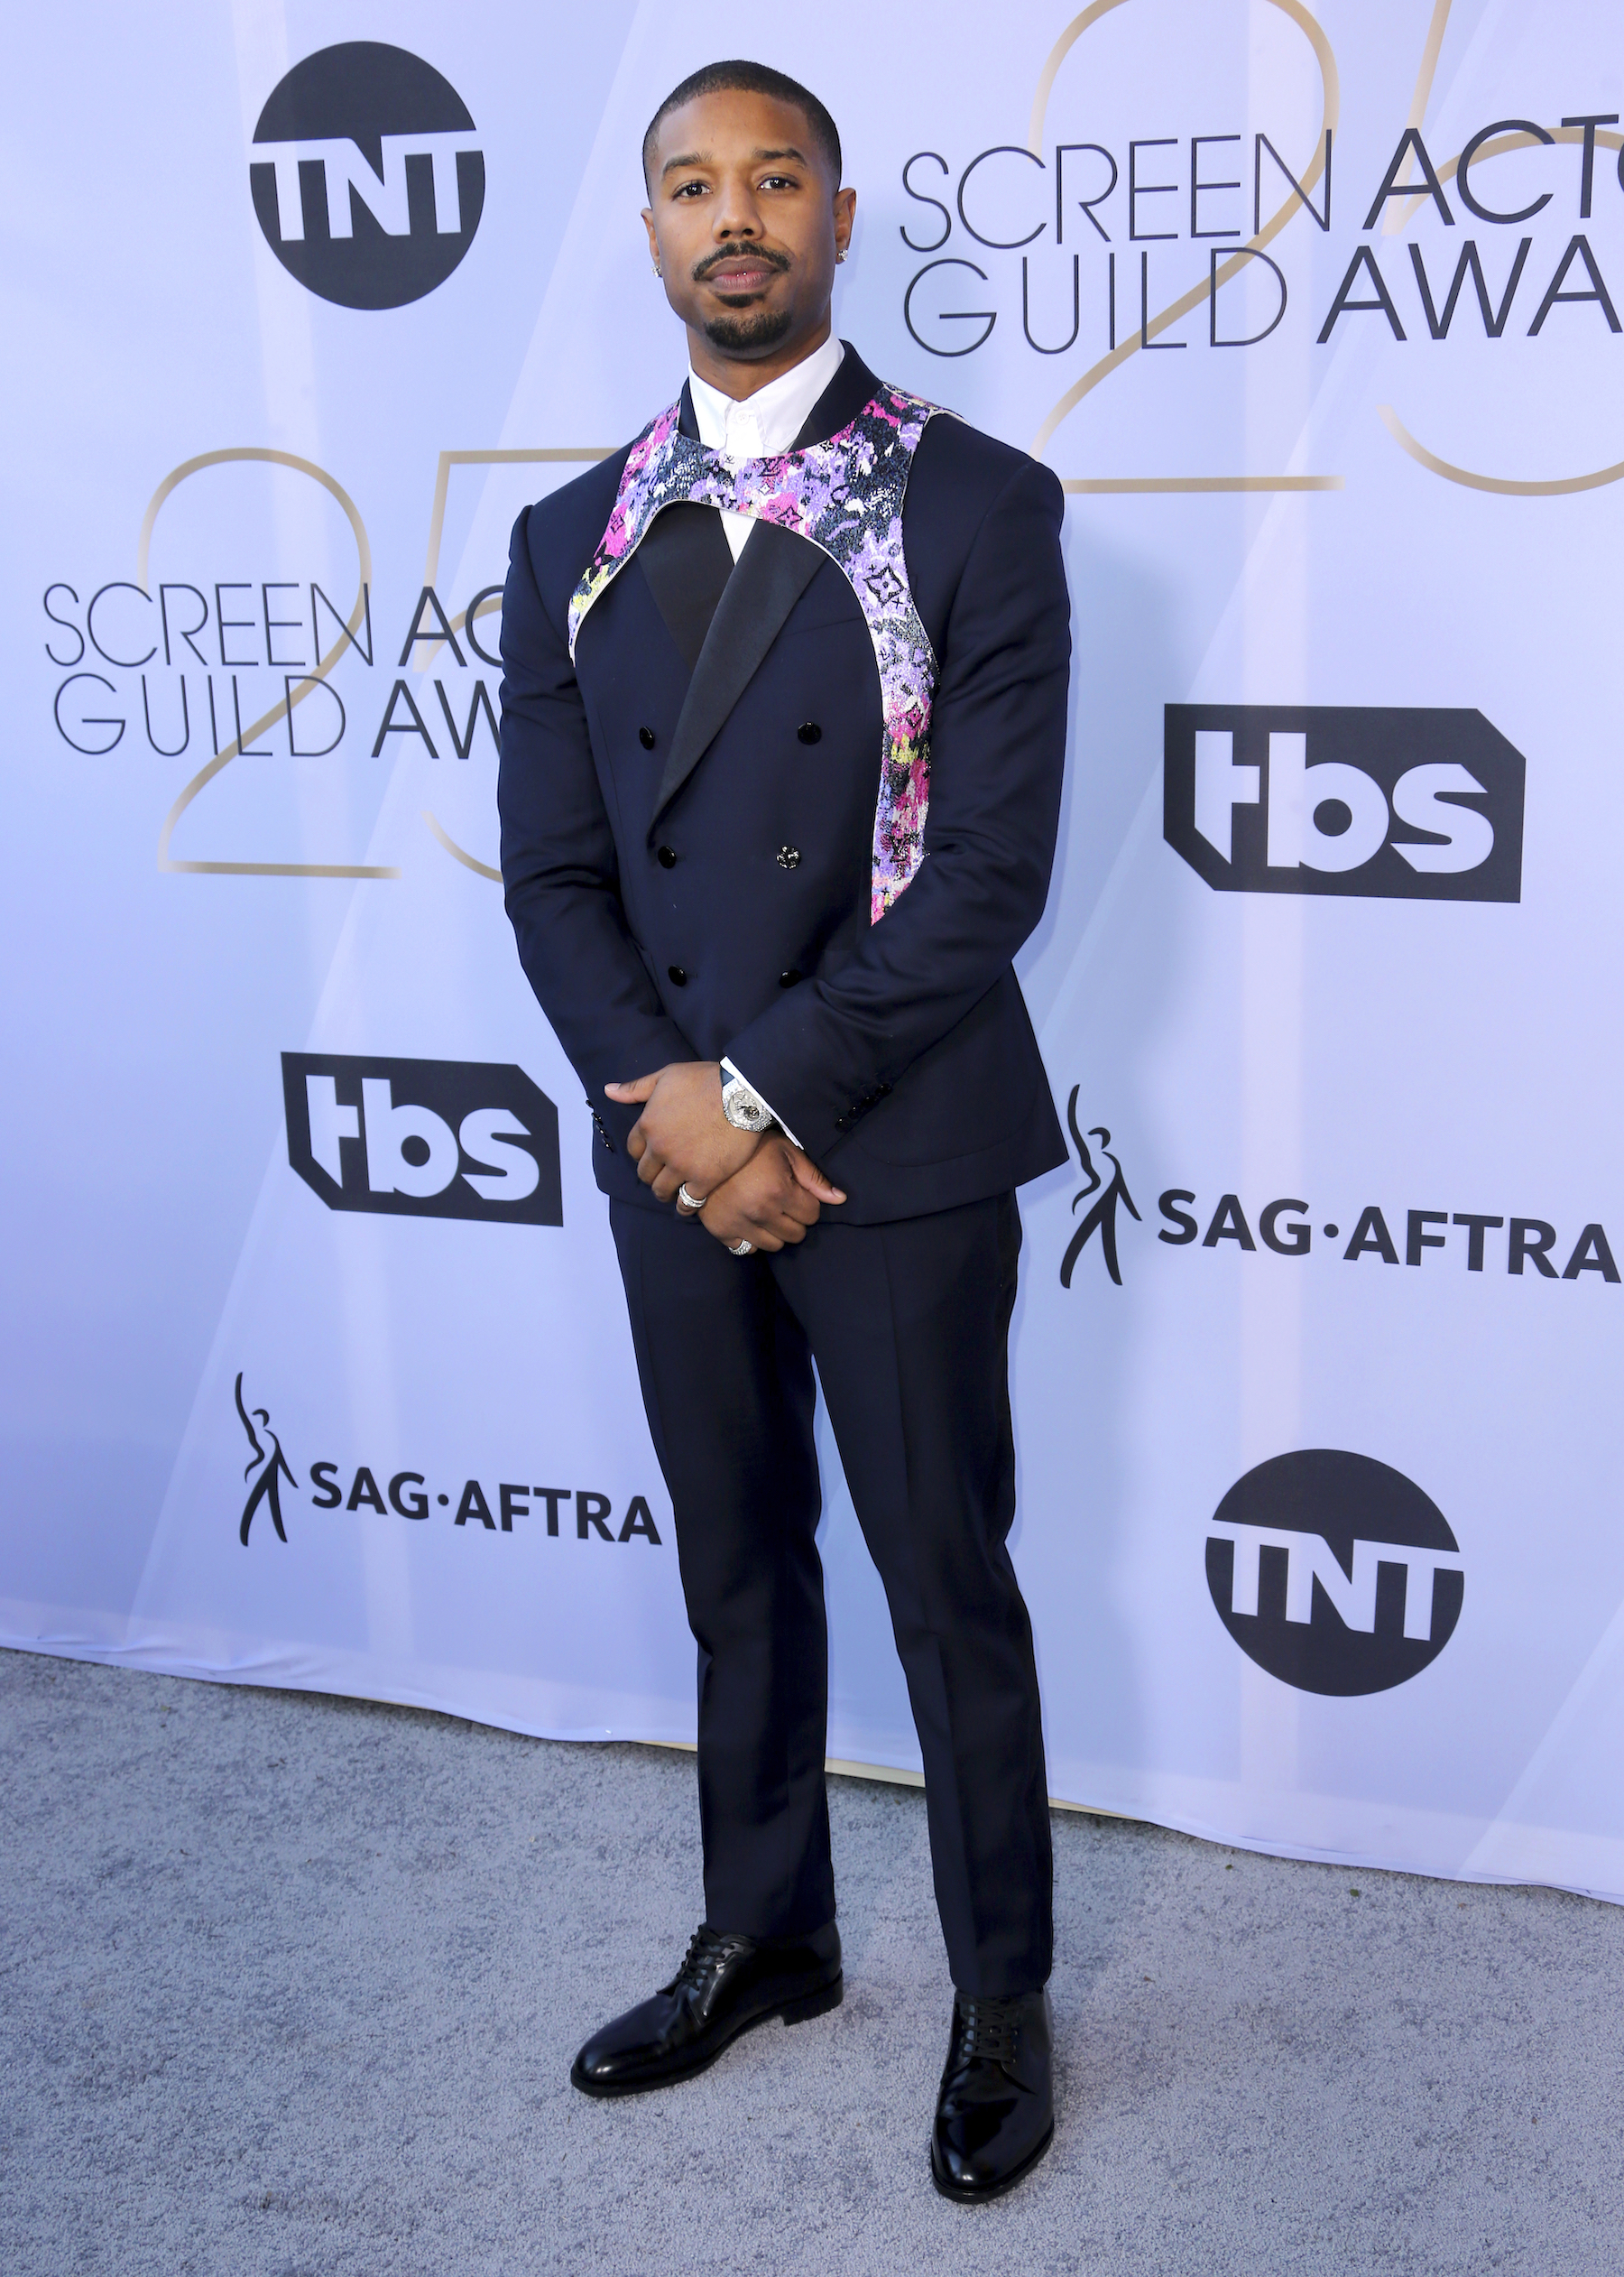 "<div class=""meta image-caption""><div class=""origin-logo origin-image ap""><span>AP</span></div><span class=""caption-text"">Michael B. Jordan arrives at the 25th annual Screen Actors Guild Awards at the Shrine Auditorium & Expo Hall on Sunday, Jan. 27, 2019, in Los Angeles. (Willy Sanjuan/Invision/AP)</span></div>"